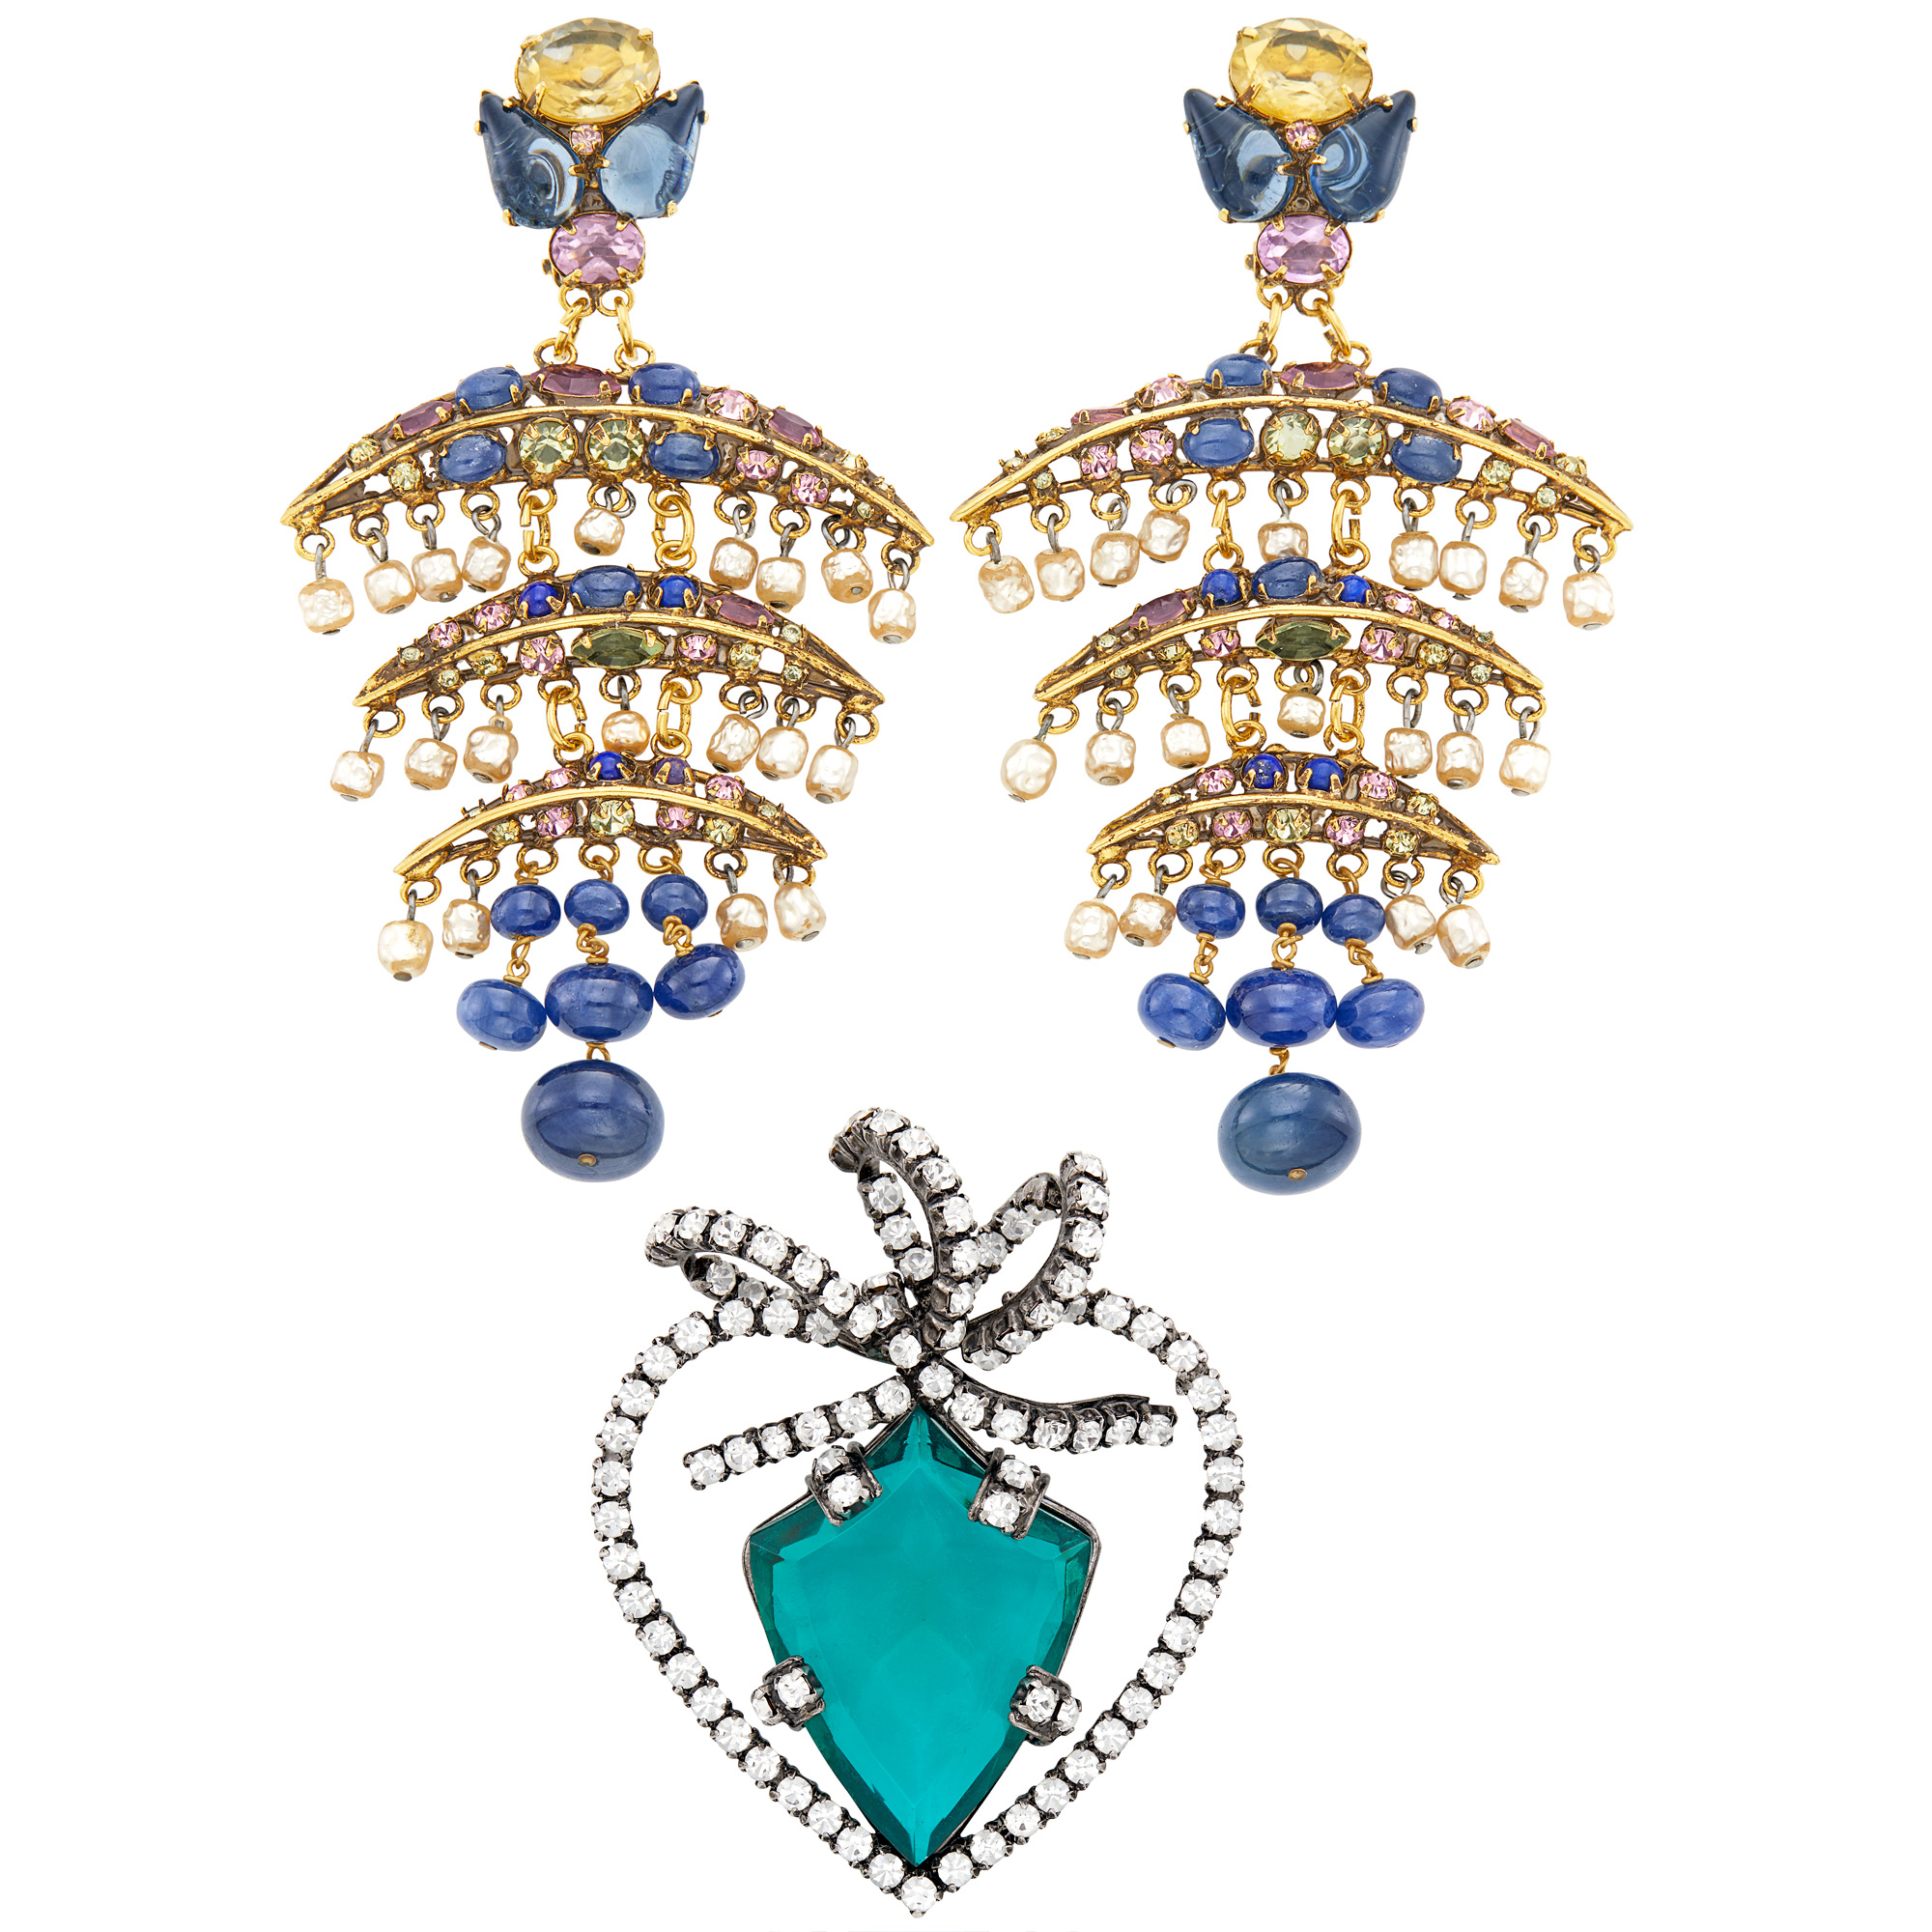 Lot image - Iradj Moini Pair of Sapphire Bead, Freshwater Pearl, Lapis and Rhinestone Pendant-Earclips and Brooch